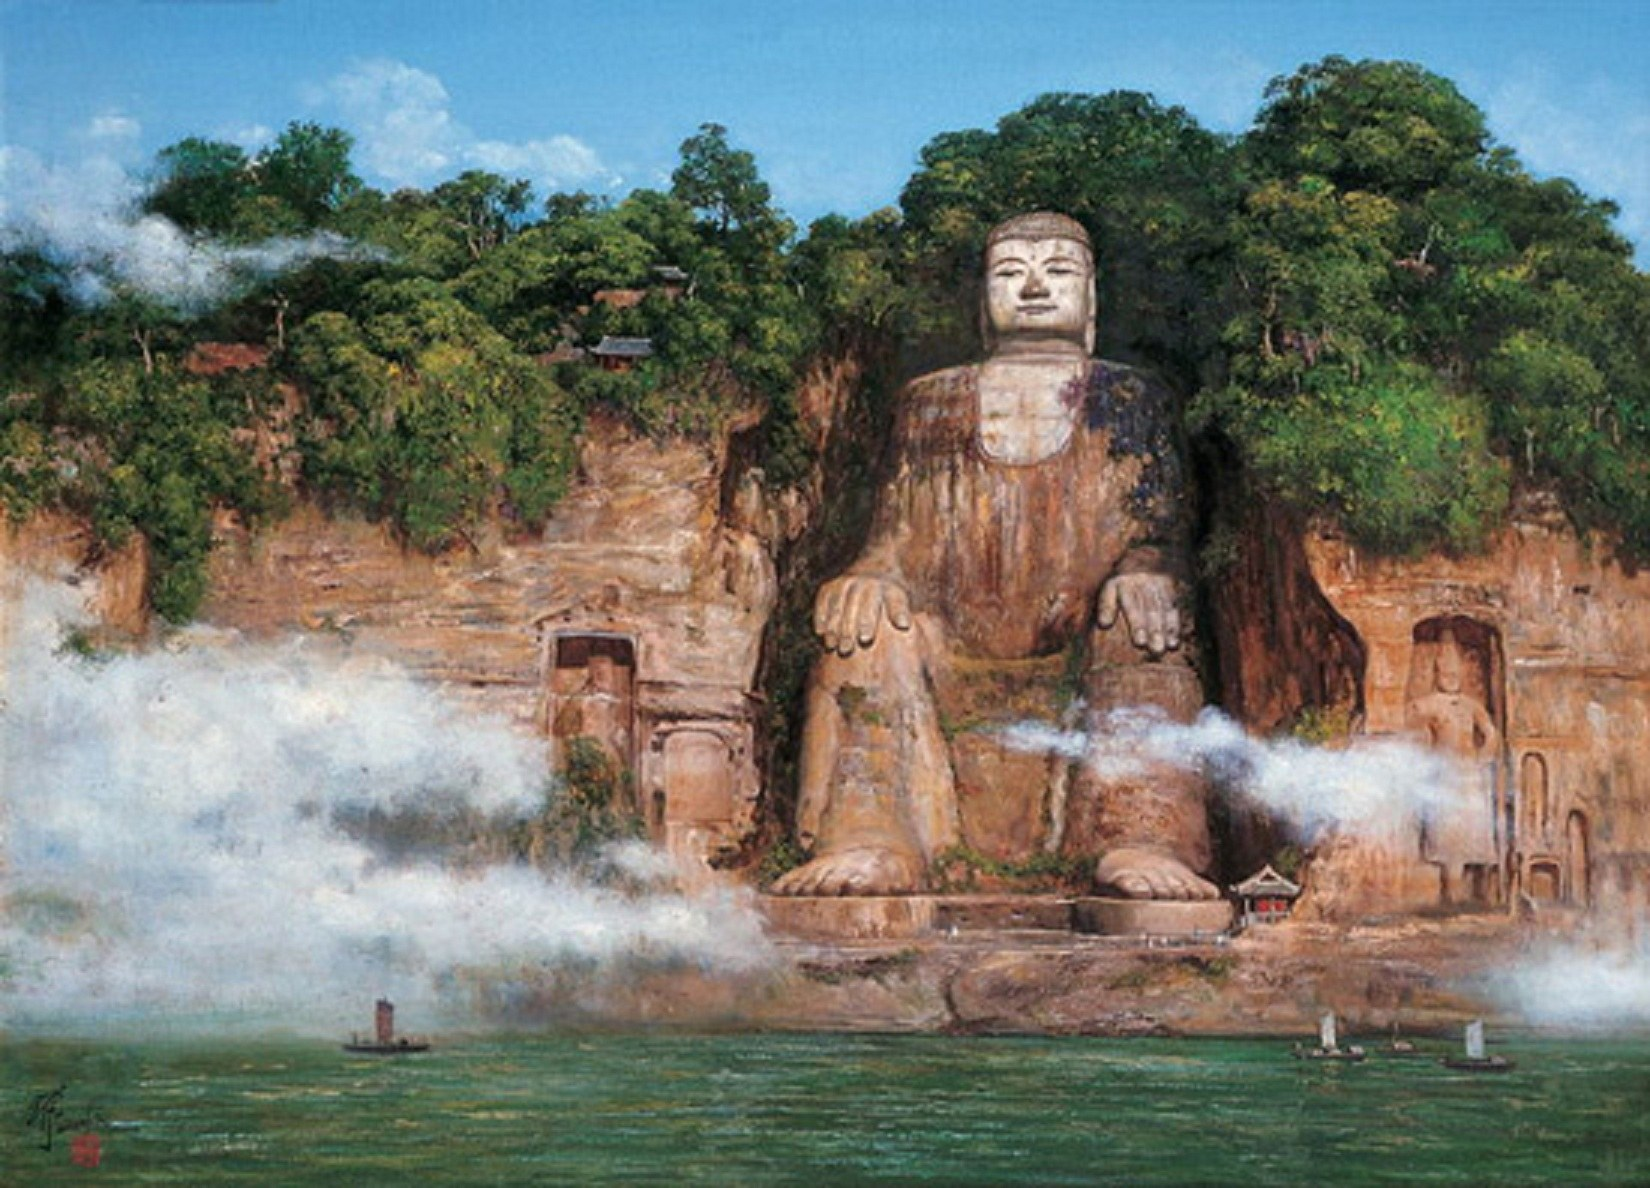 Tracing the World's Largest Buddha Statues